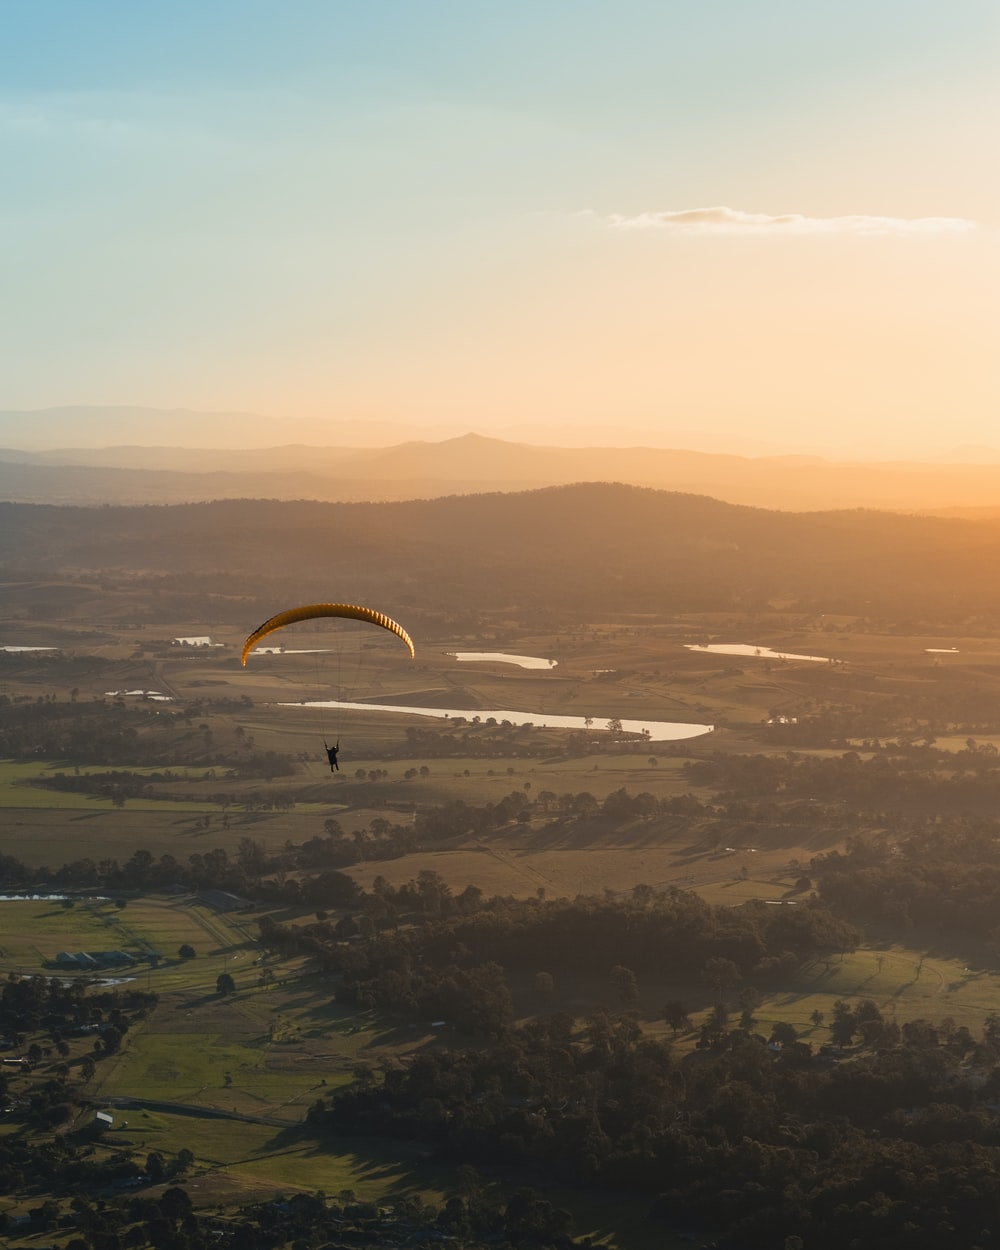 person paragliding above countryside during daytime